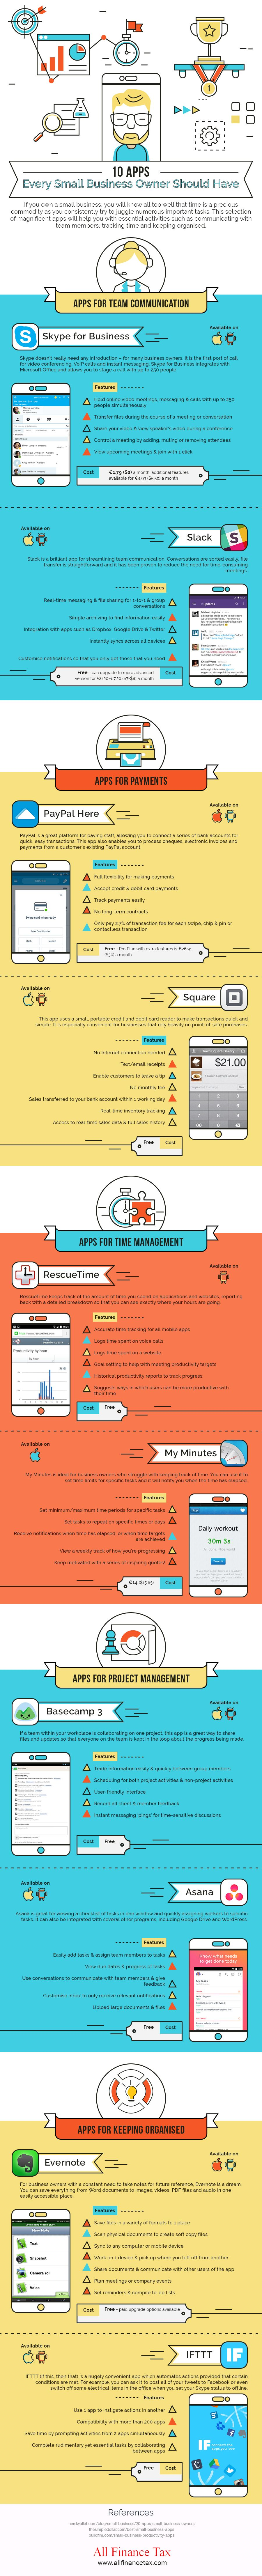 10 Apps Every Small Business Owner Should Have [Infographic]